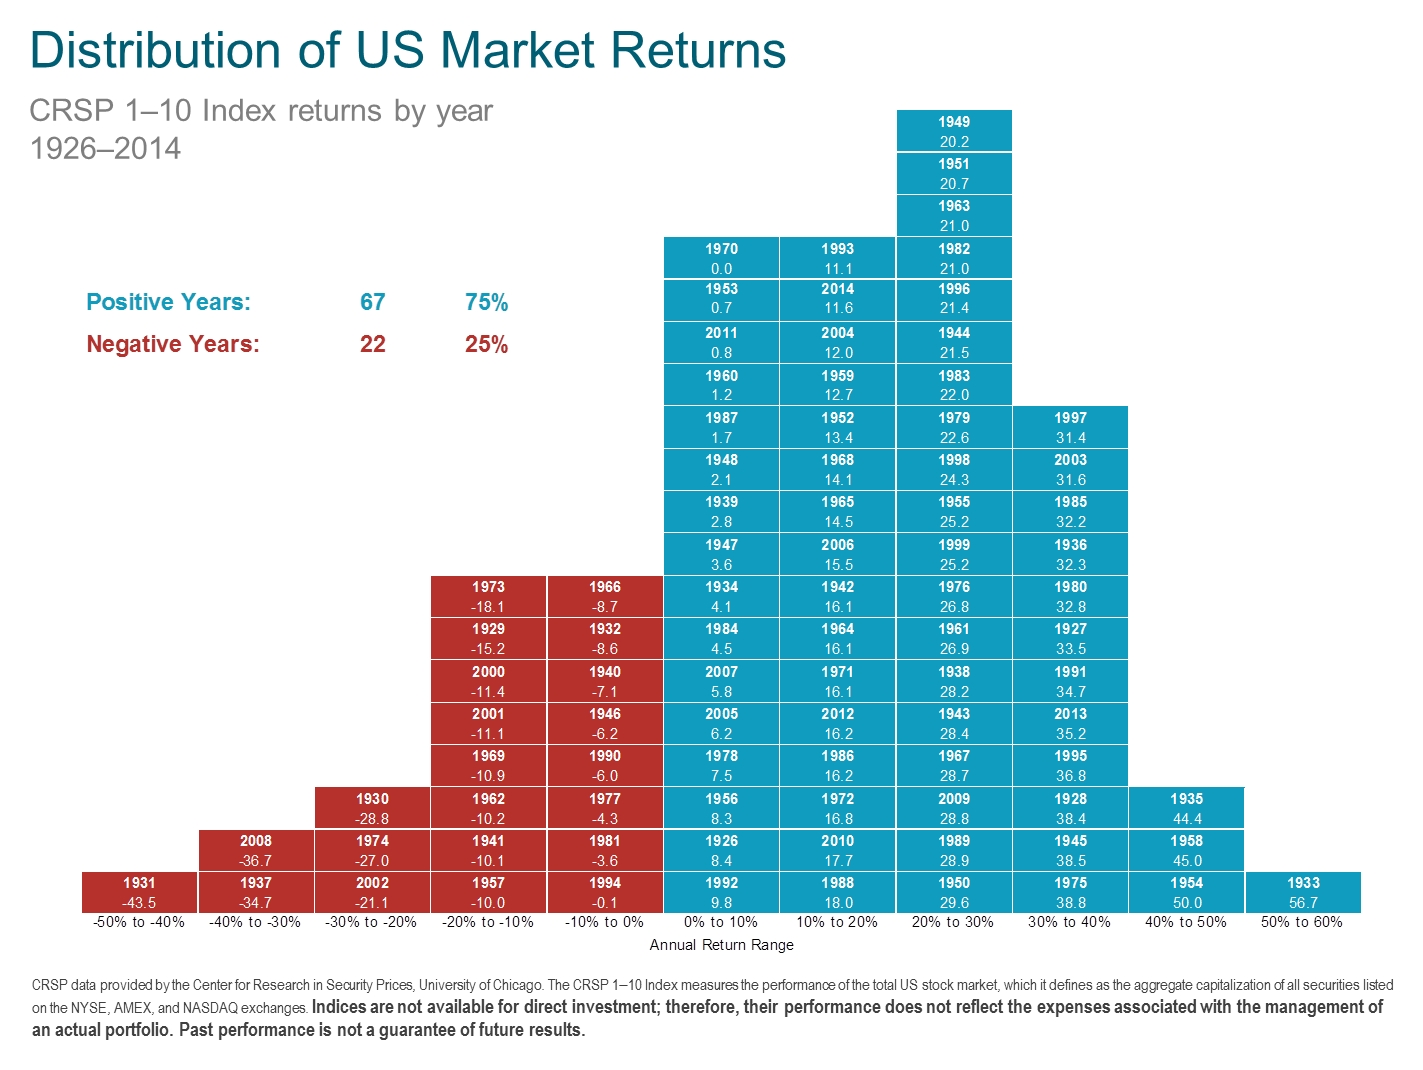 Distribution of US Market returns 1926-2014